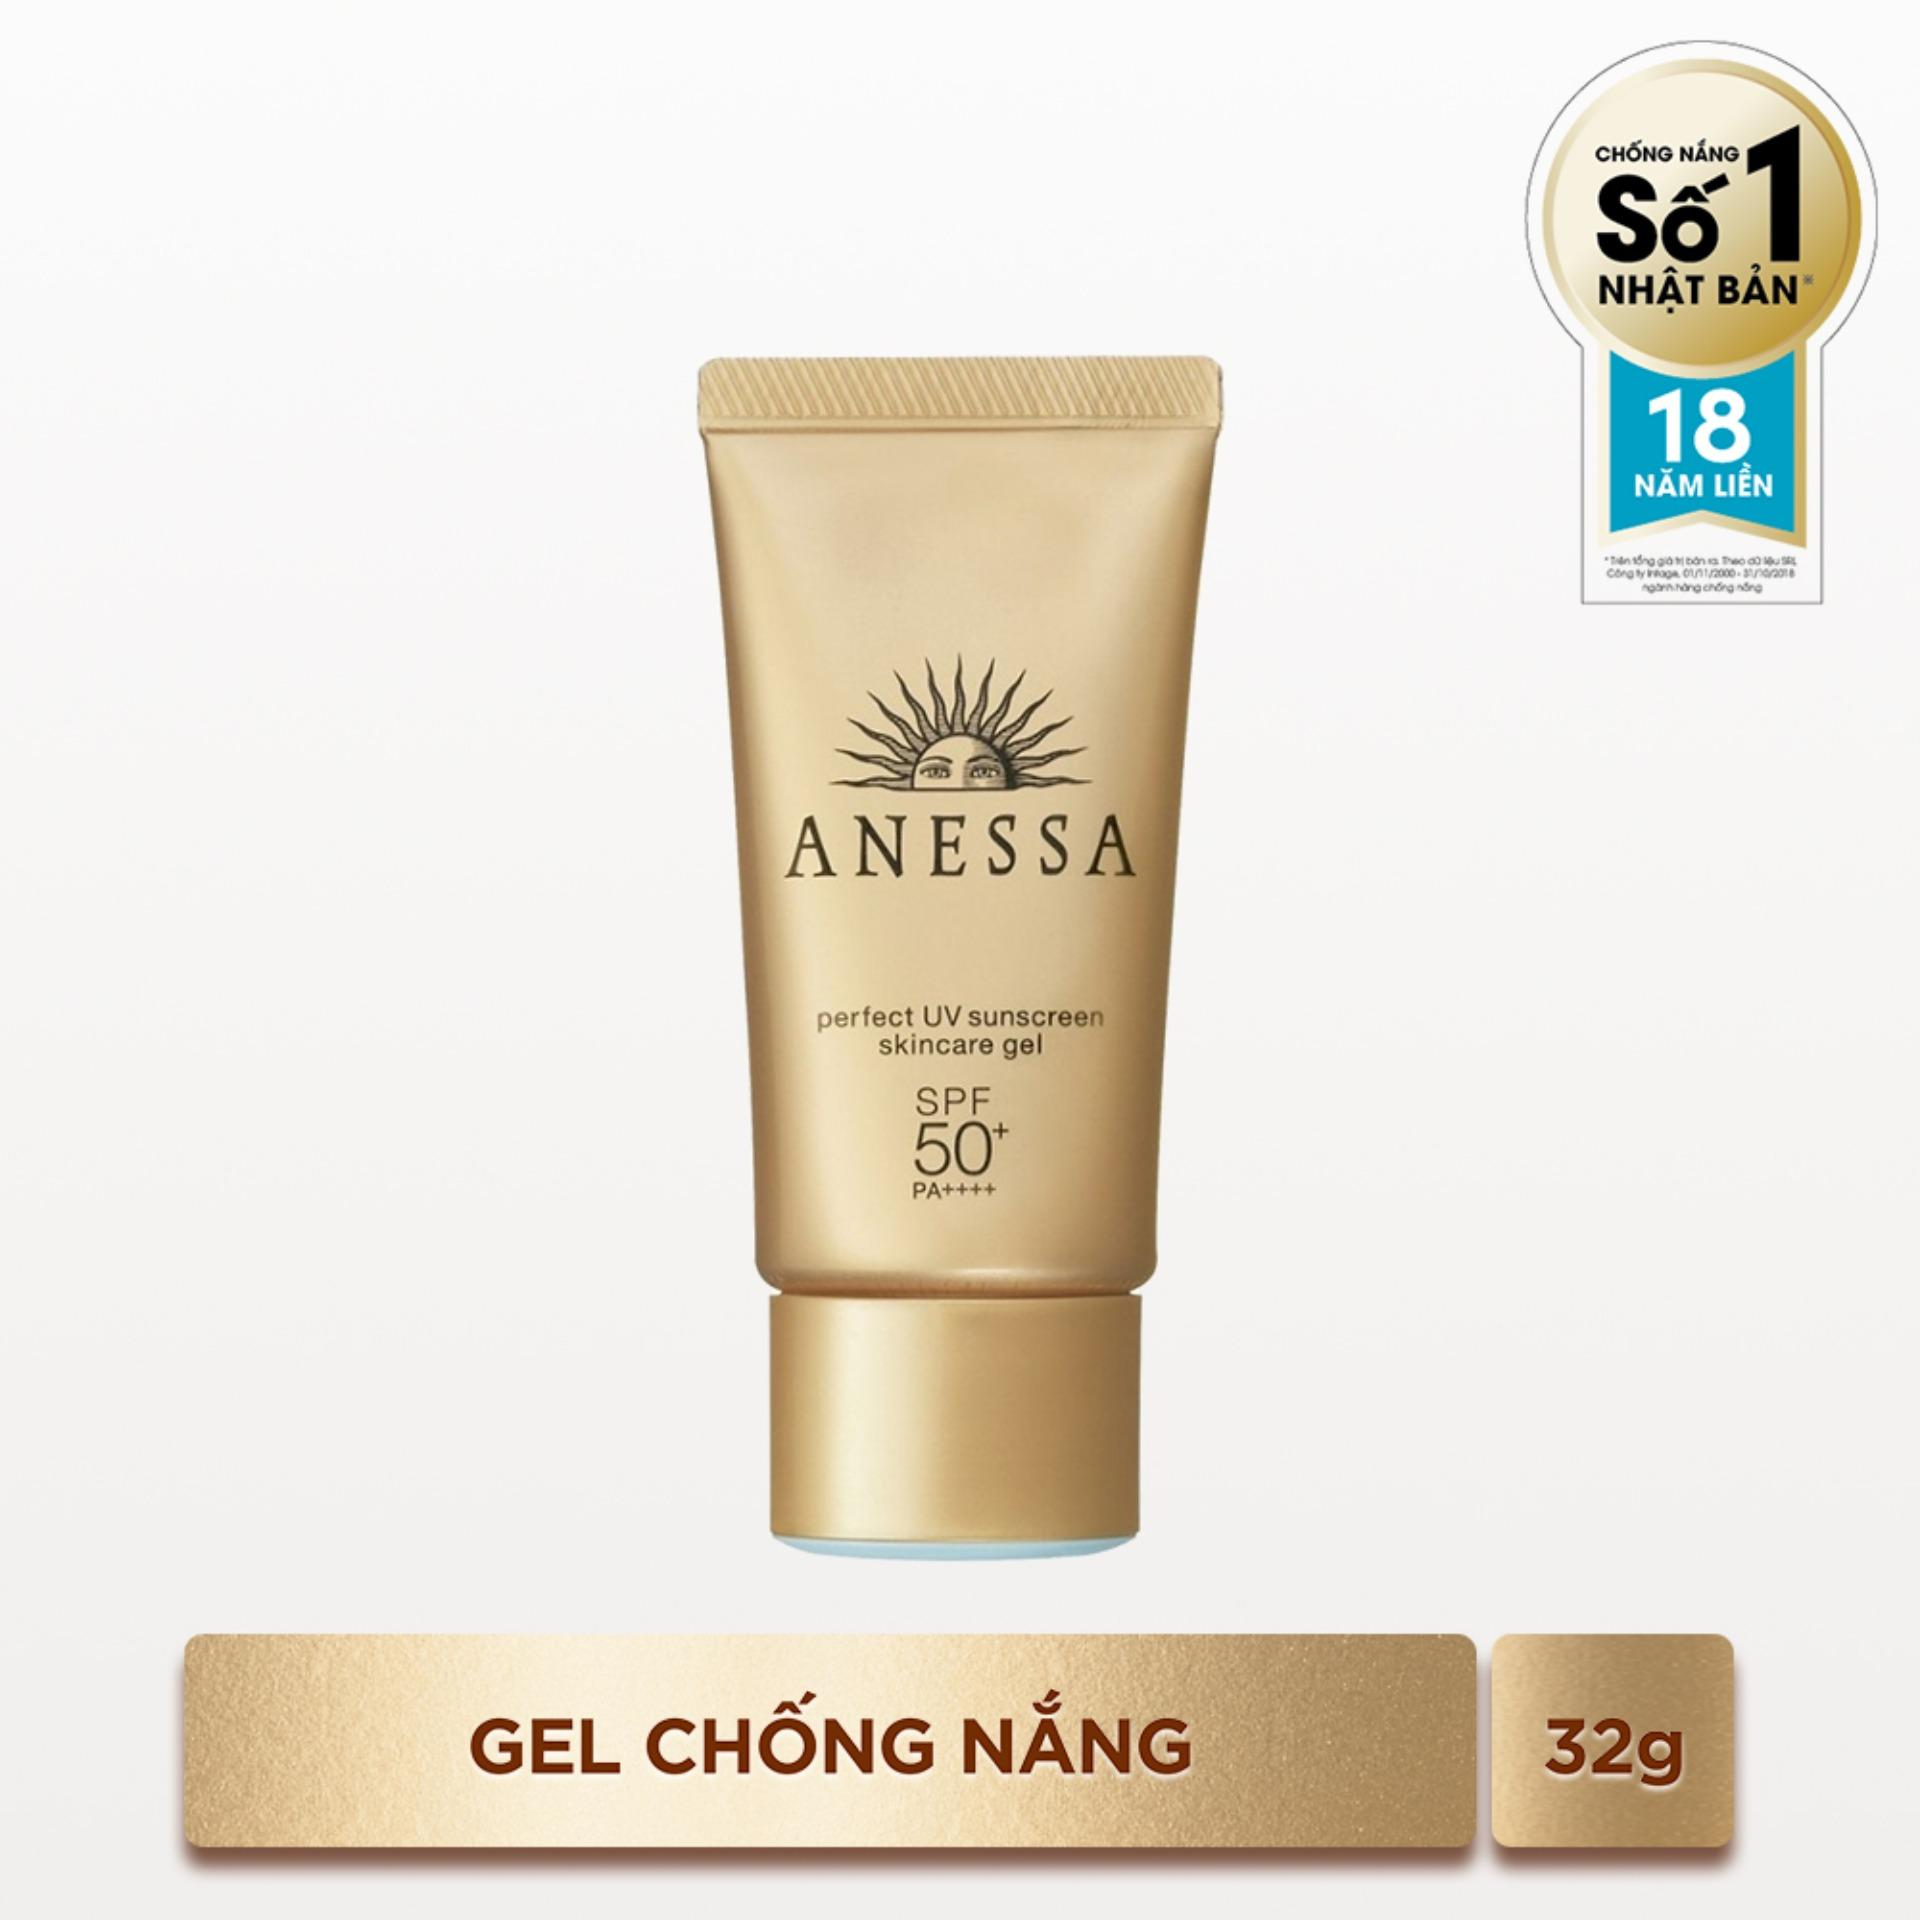 Gel chống nắng Anessa 32g